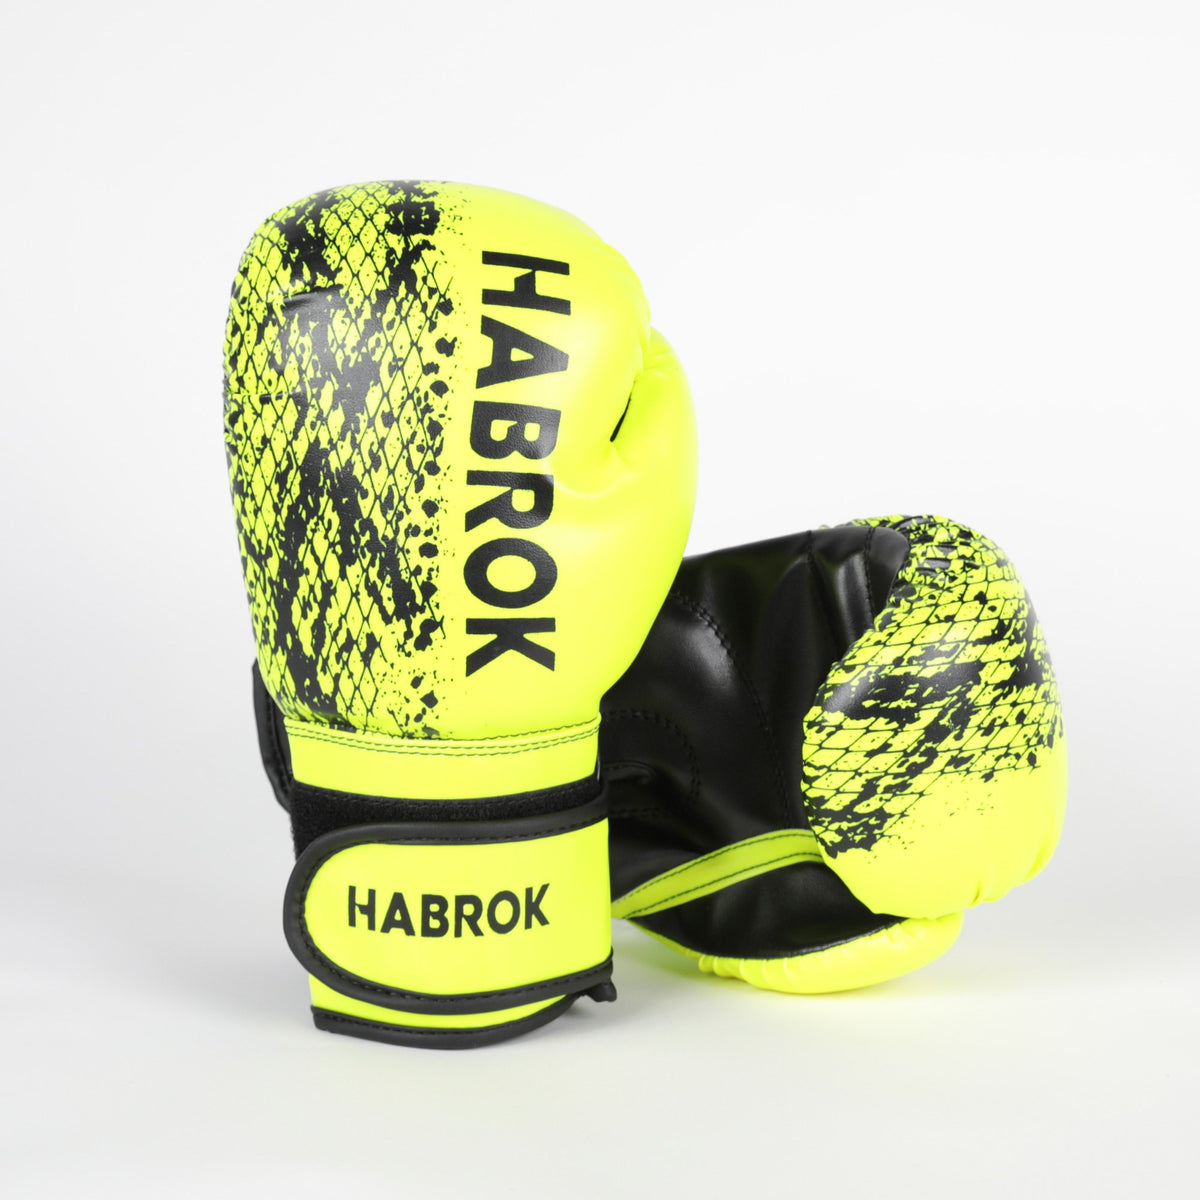 Habrok Boxing Gloves X1 | Boxing Gloves | Kids | Habrok | Yellow